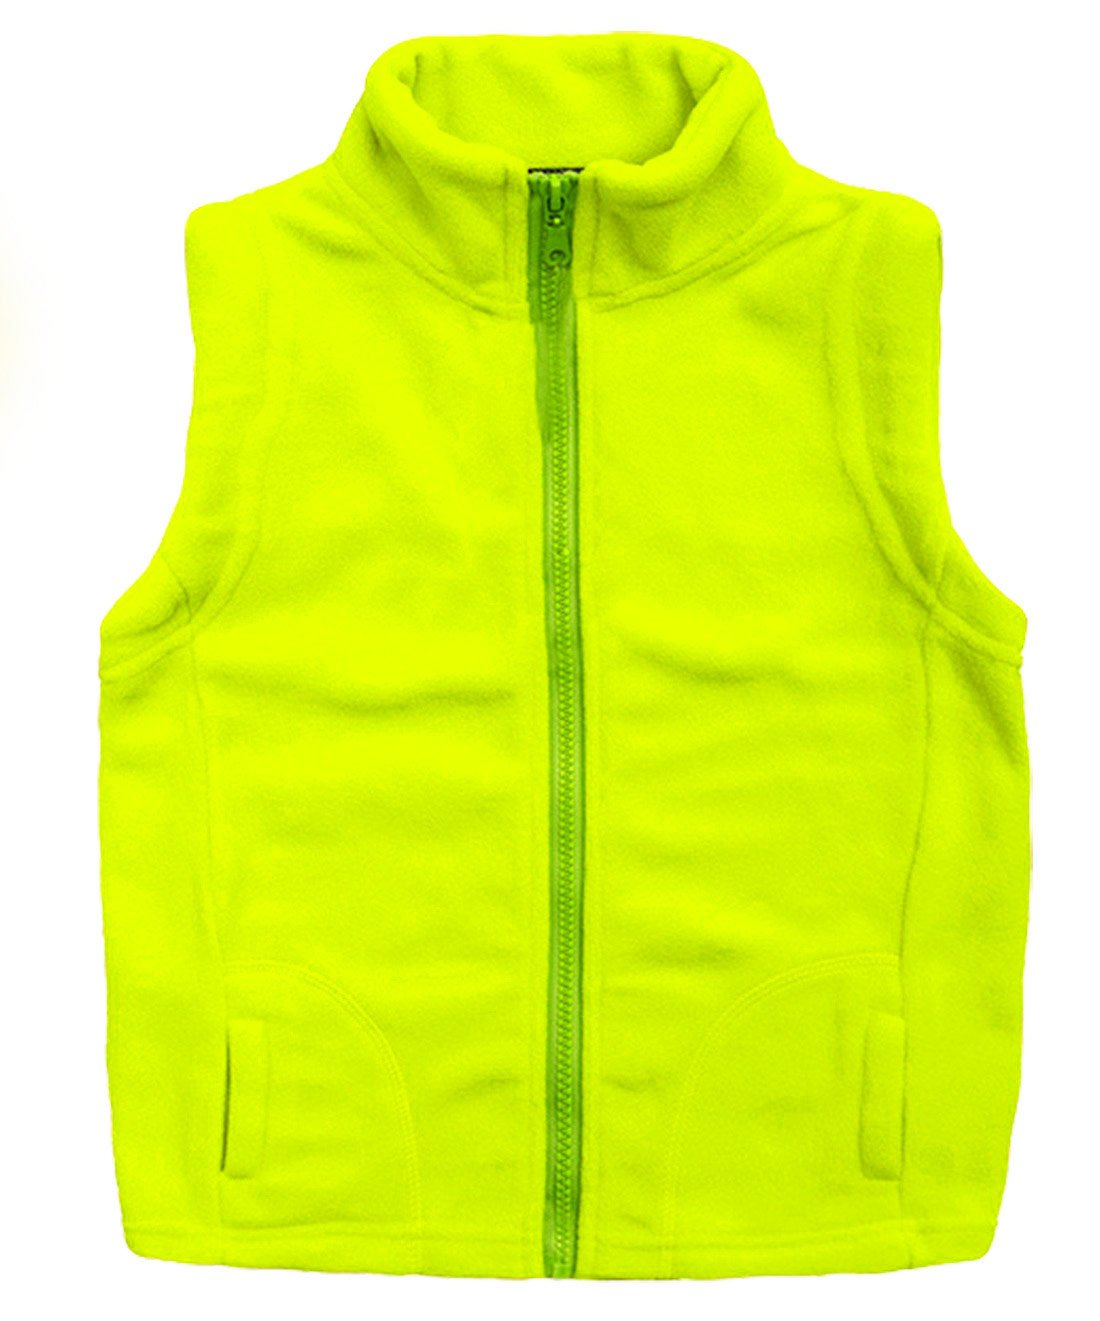 Aivtalk Boys Sleeveless Jacket Warmth Fleece Vest